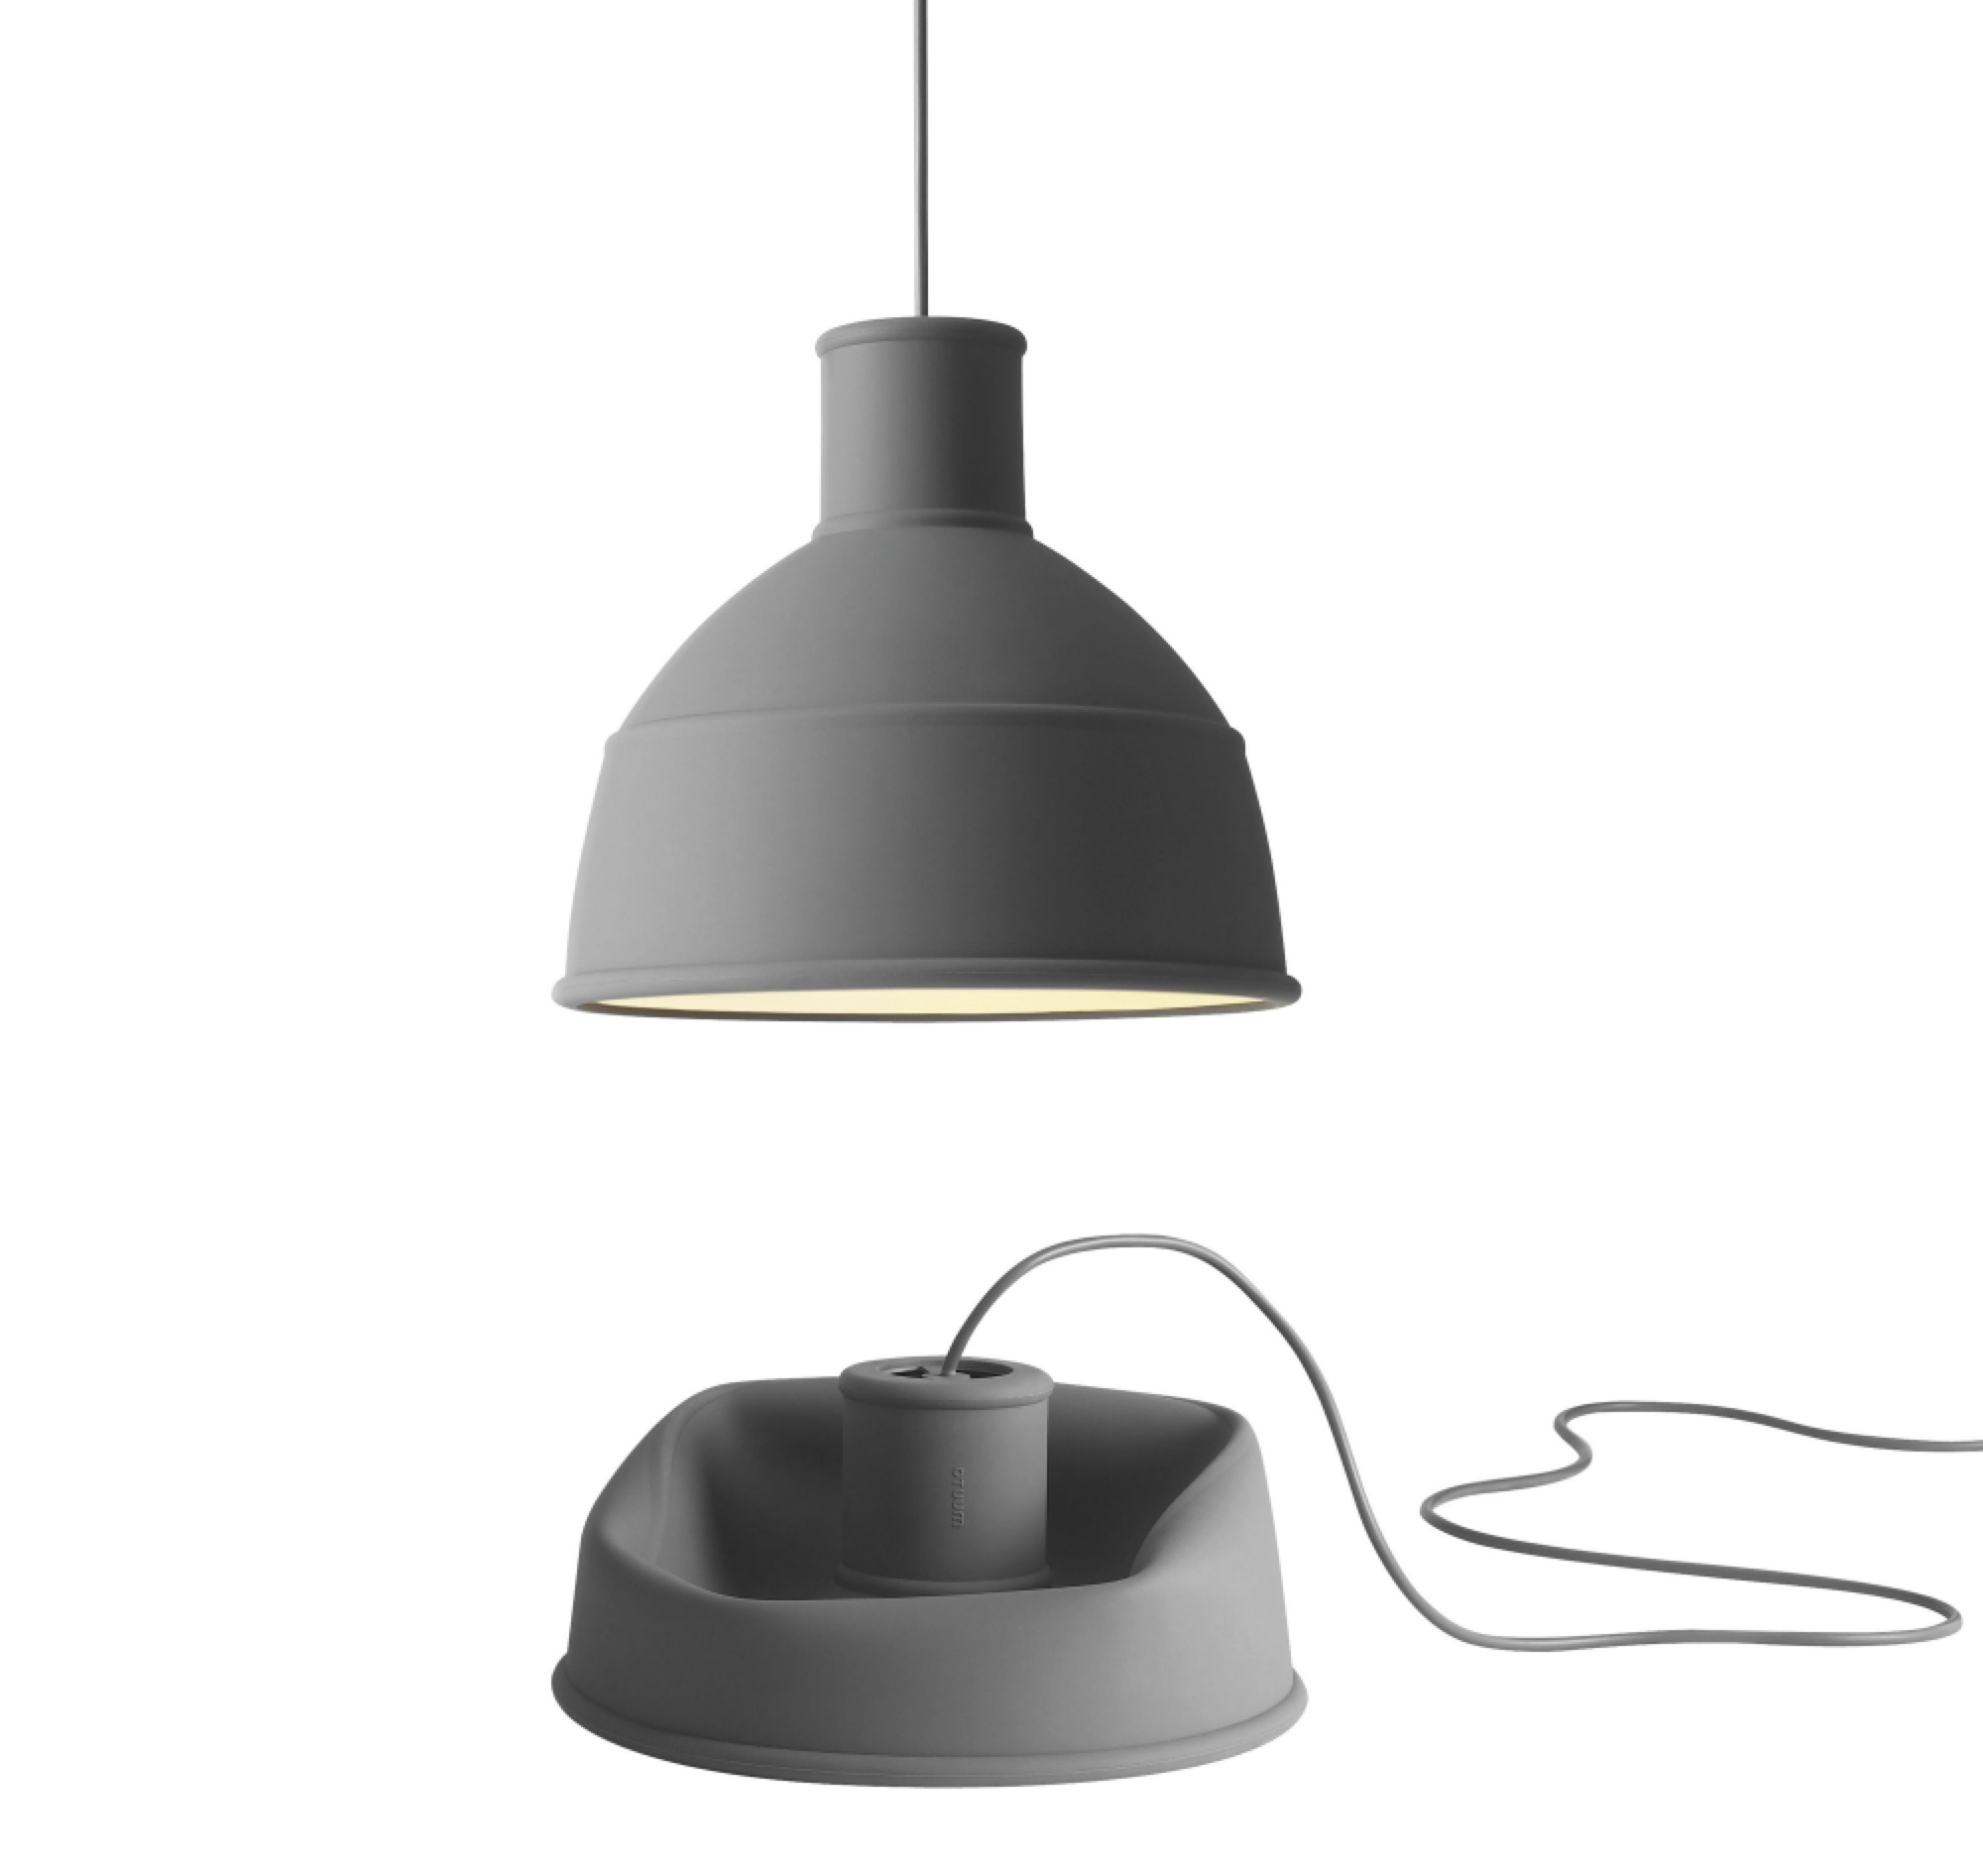 Muuto Unfold : Suspension souple en caoutchouc de silicone